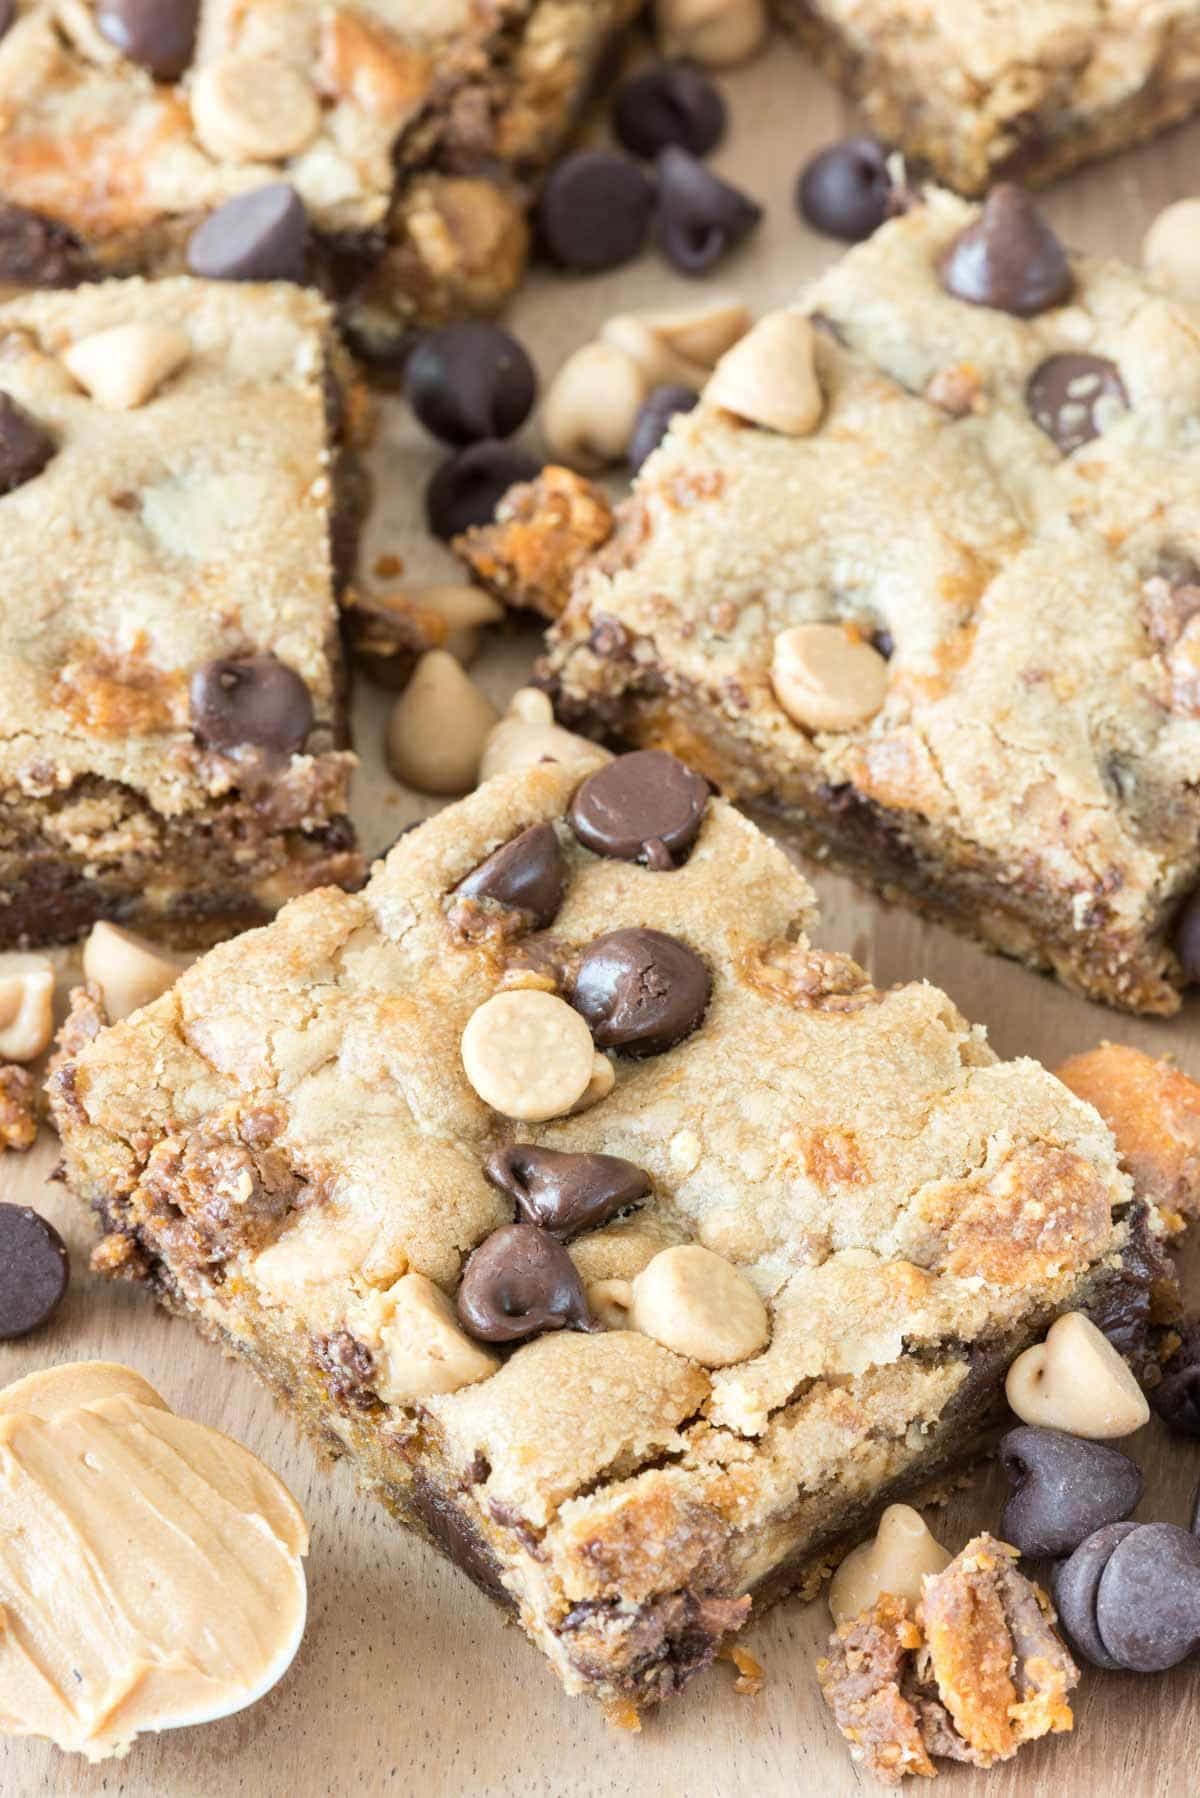 Triple Threat Peanut Butter Cookie Bars - Crazy for Crust